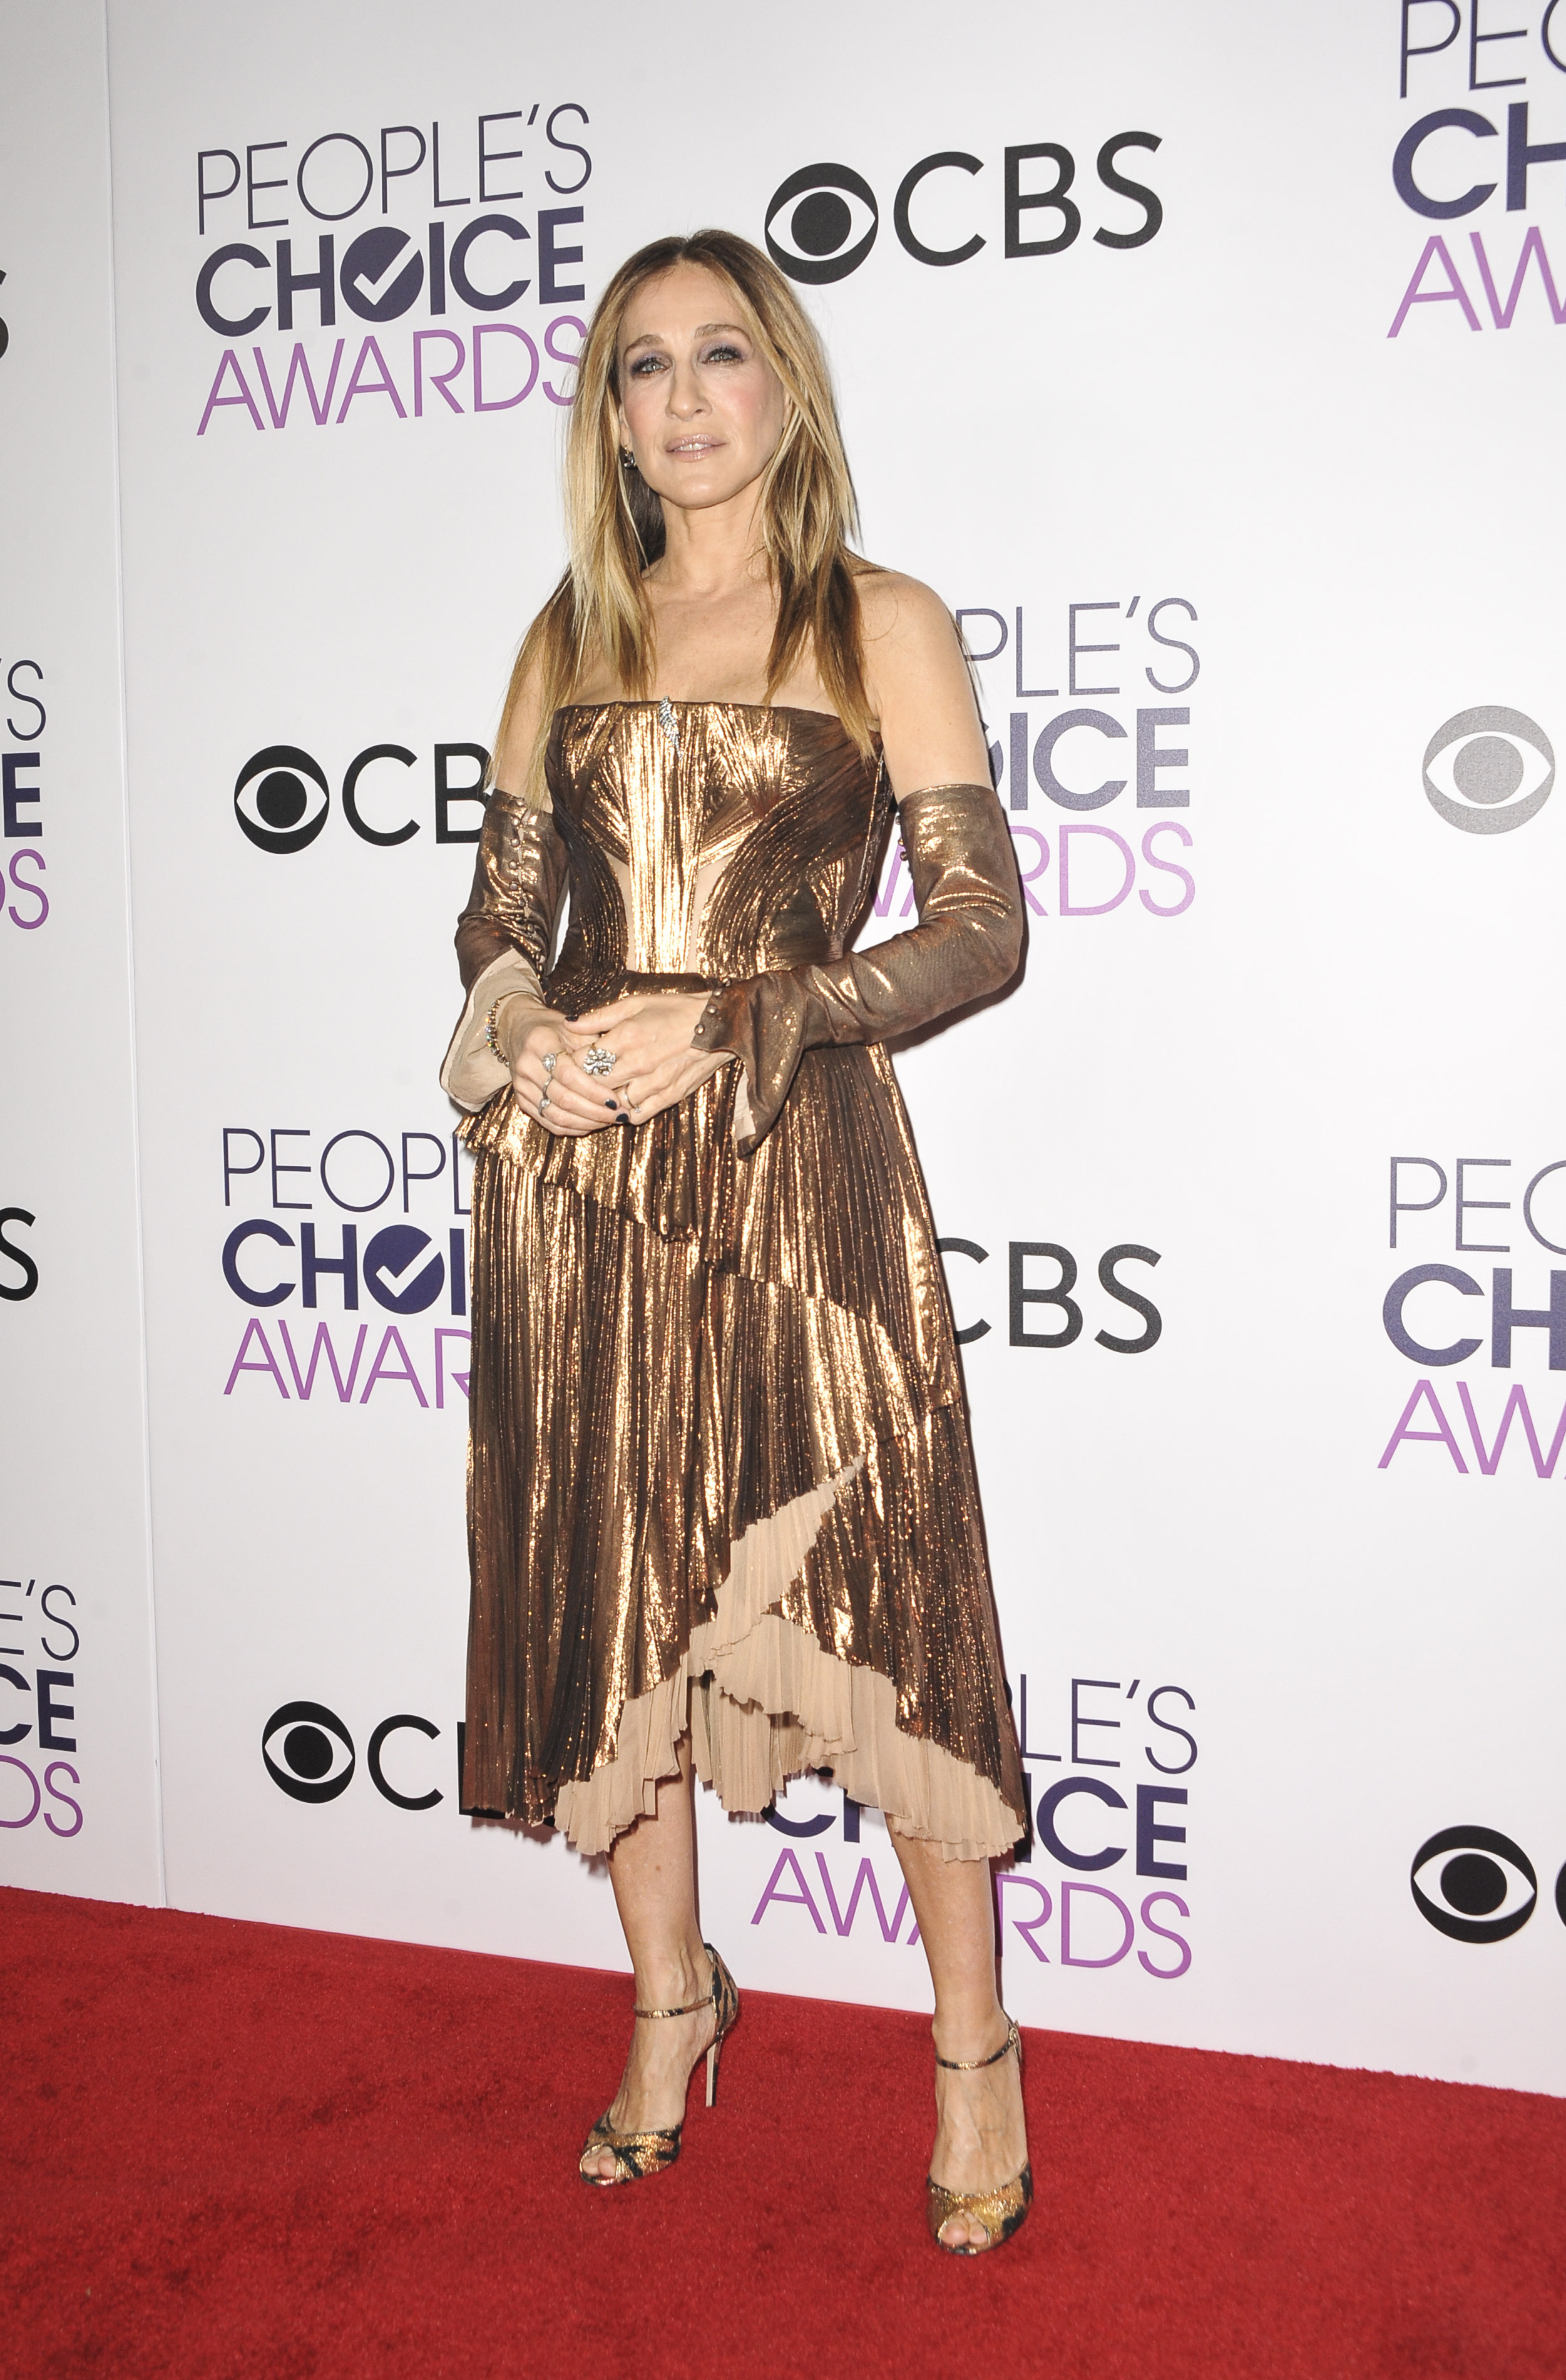 2017 People's Choice Awards, held at the Microsoft Theatre - Press Room                                    Featuring: Sarah Jessica Parker                  Where: Los Angeles, California, United States                  When: 19 Jan 2017                  Credit: Apega/WENN.com